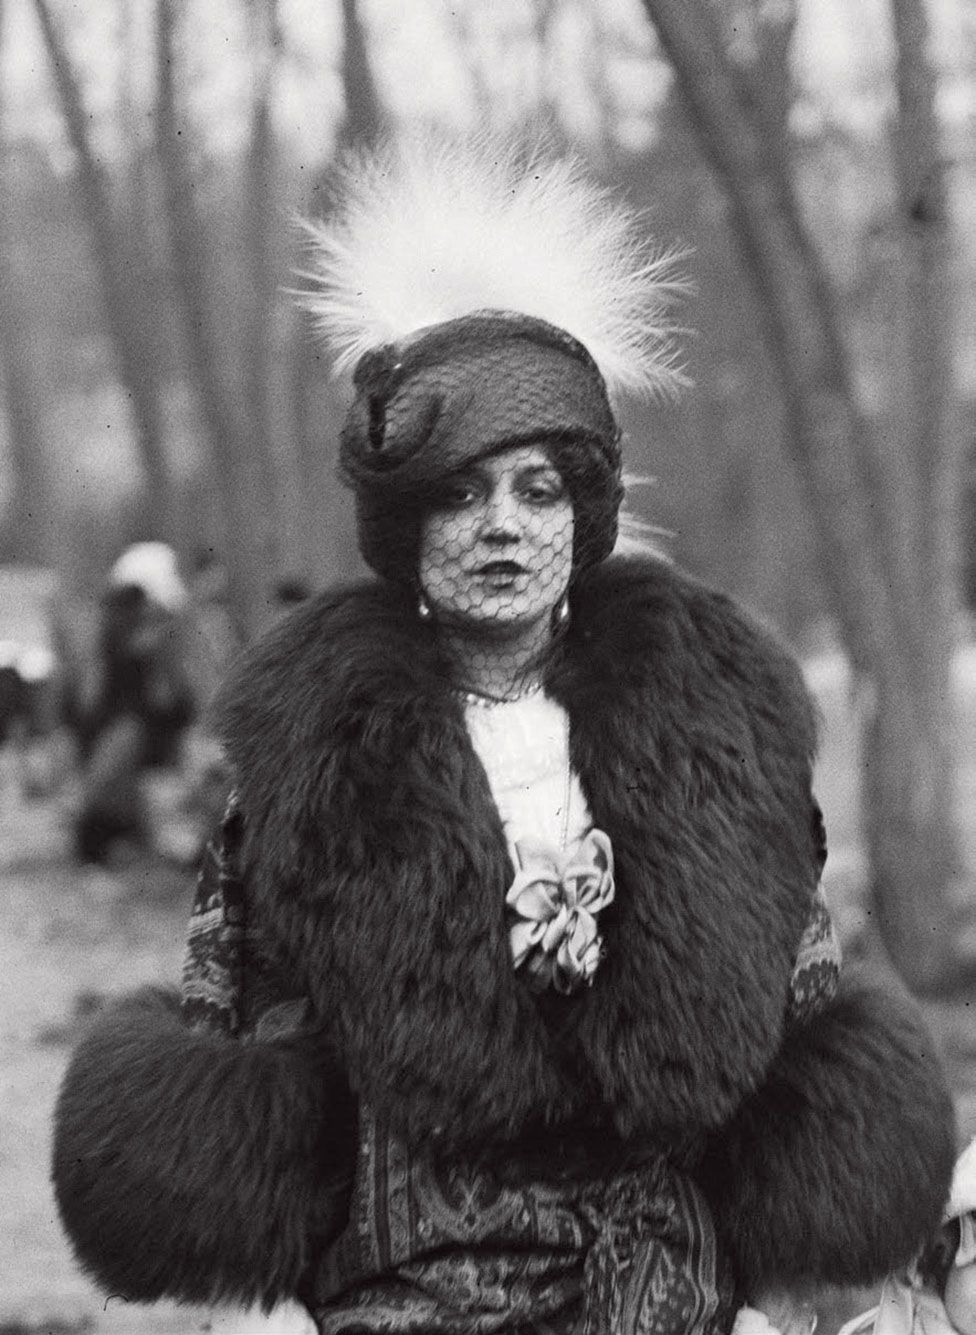 A portrait of a woman in a park wearing an elaborate hat, face veil and thick fur coat